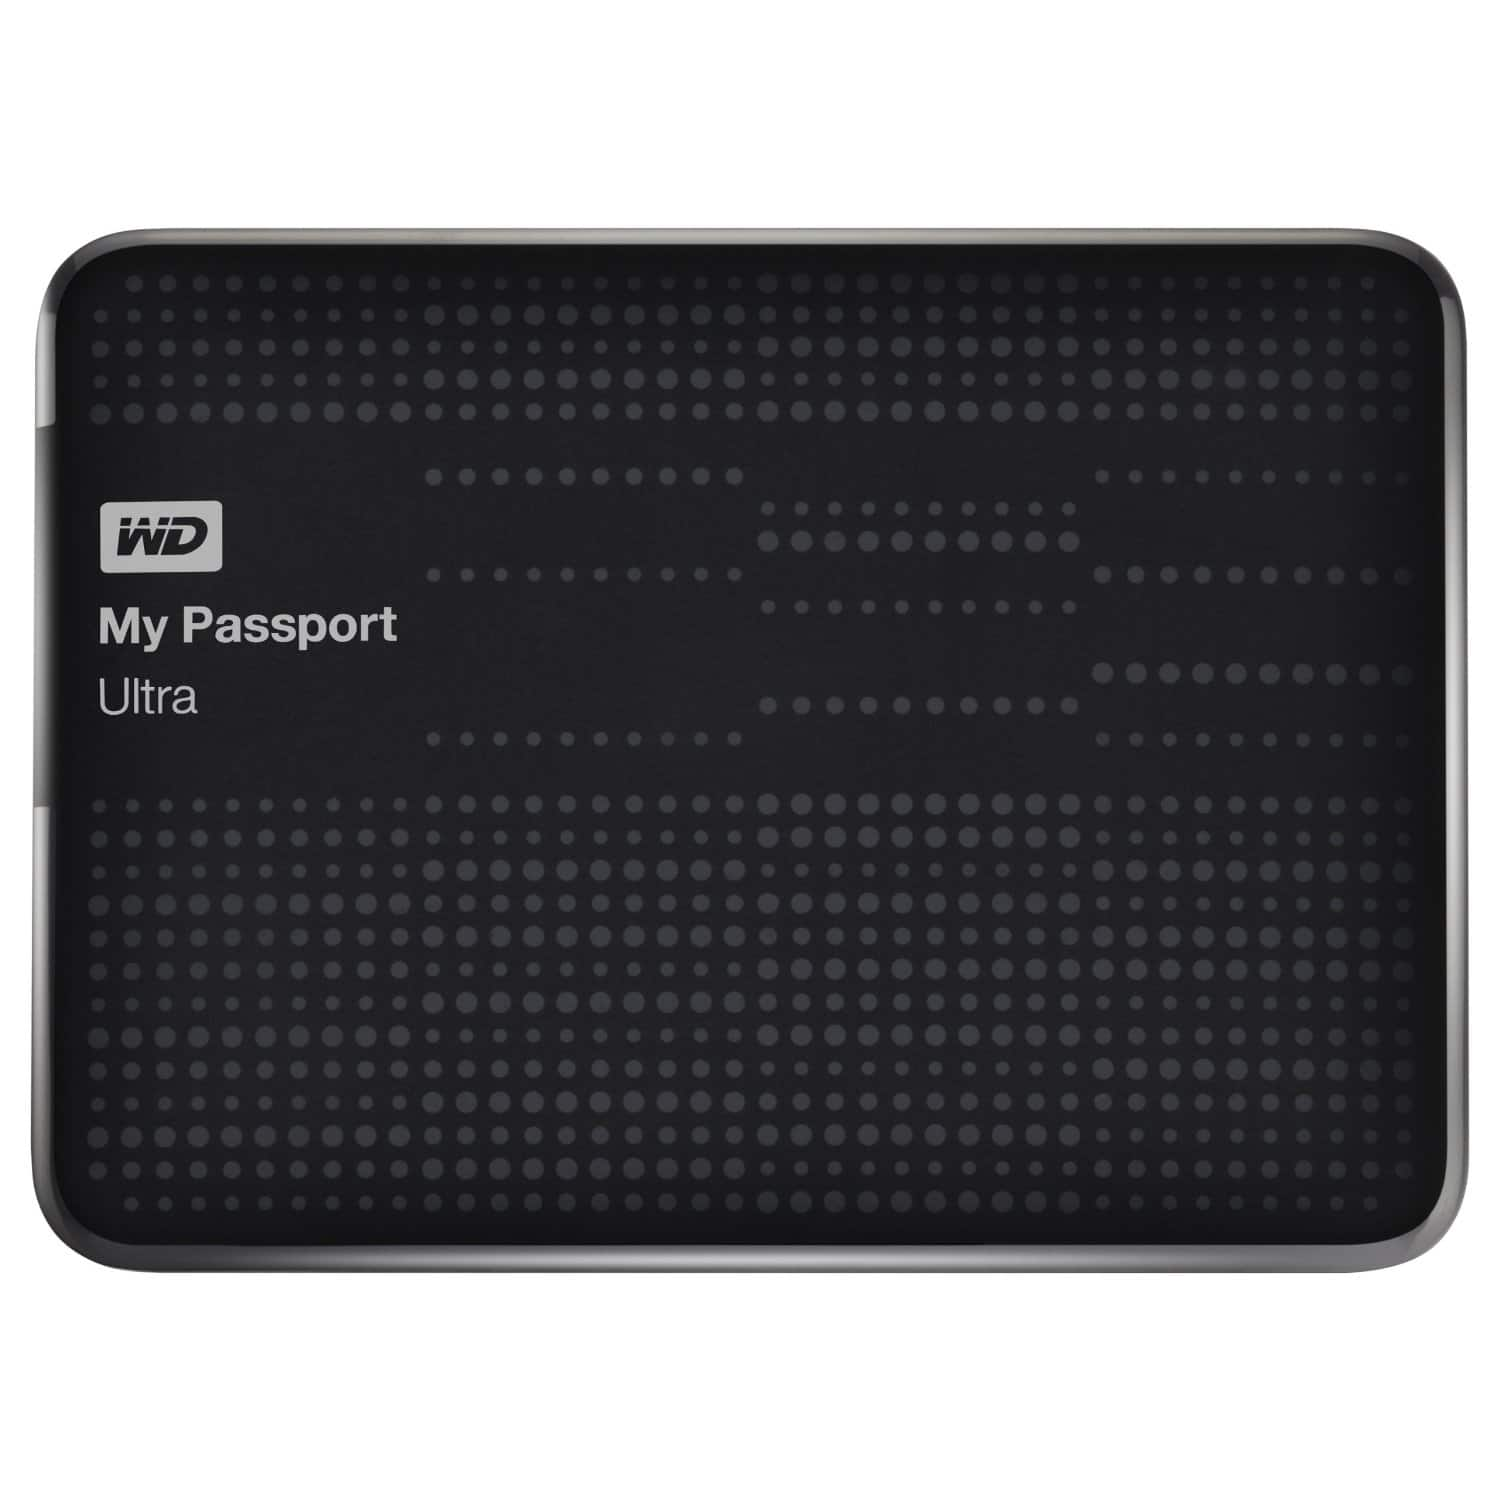 2TB Western Digital My Passport Ultra USB 3.0 Portable Hard Drive $79.99 with free shipping